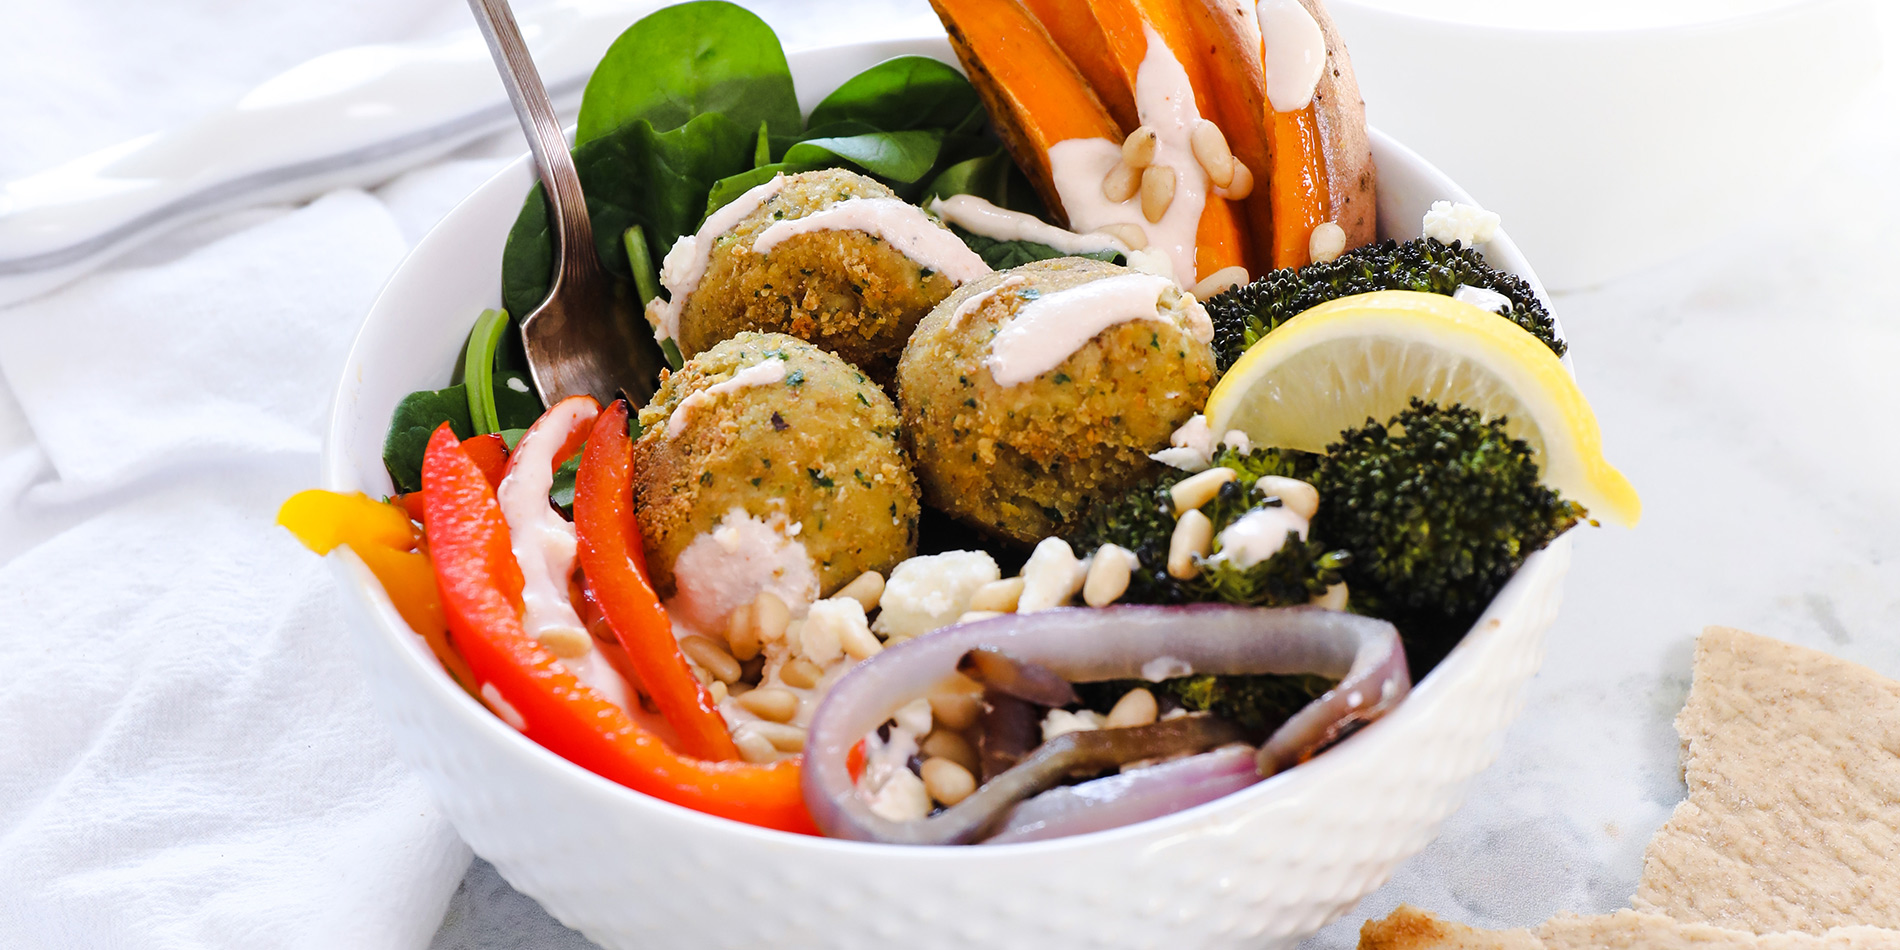 Nutty Falafel sitting in bed of vegetables in a white bowl